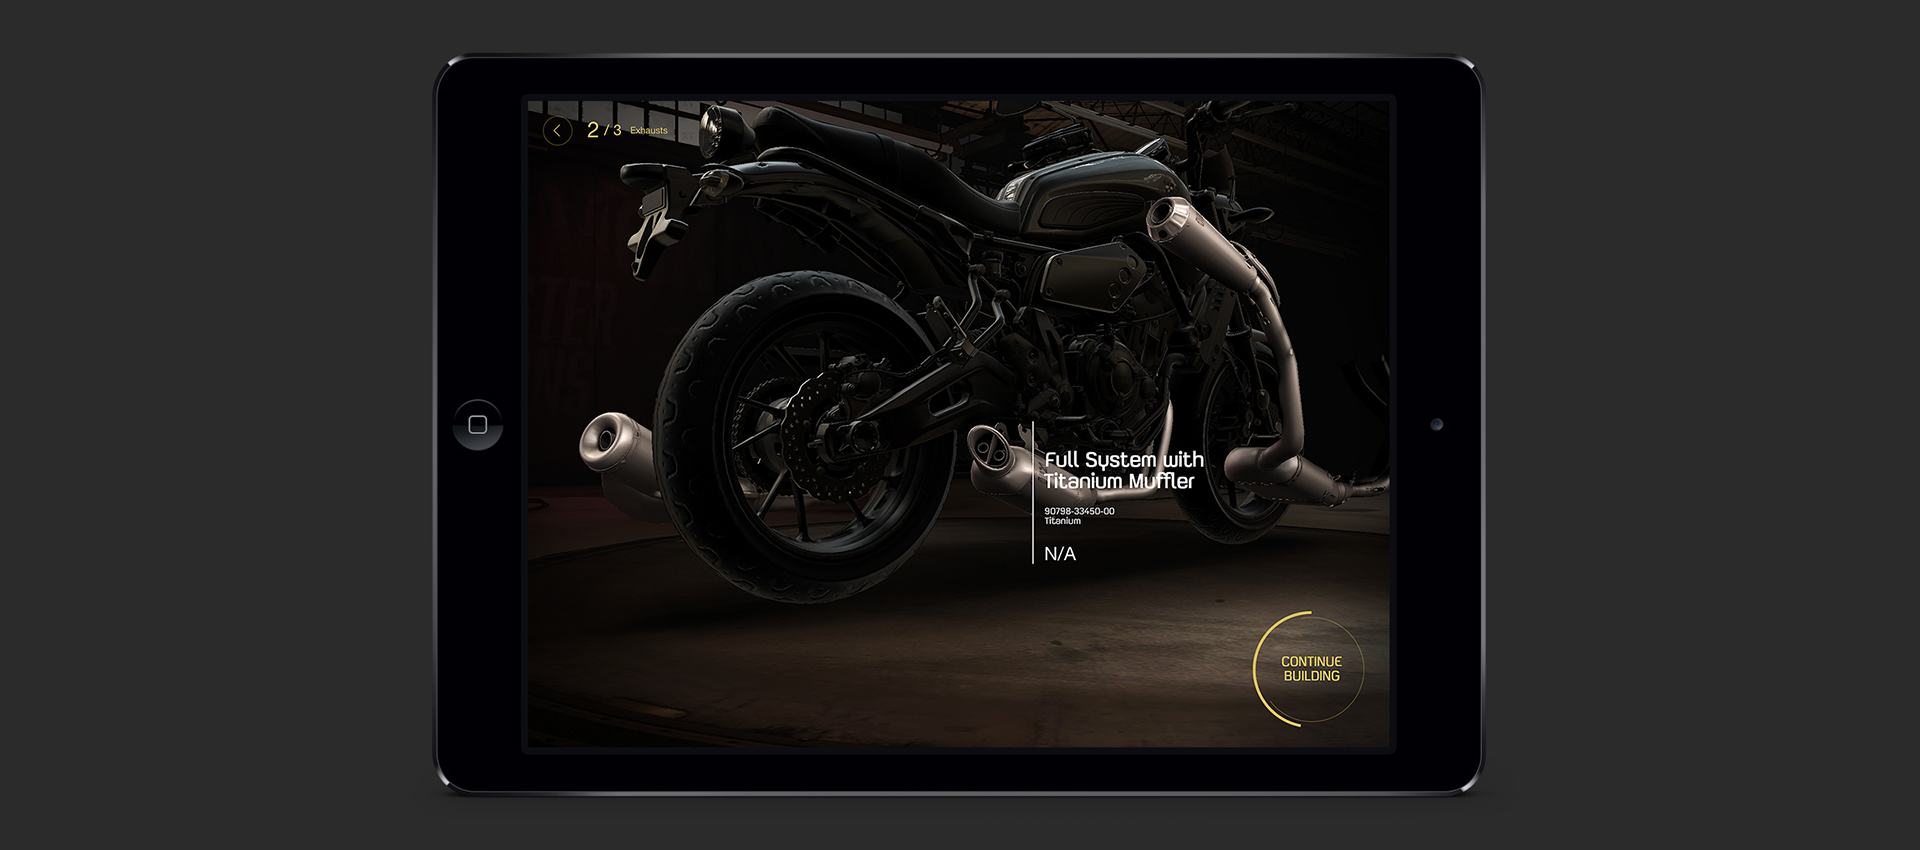 Yamaha-My-Garage_ipad8